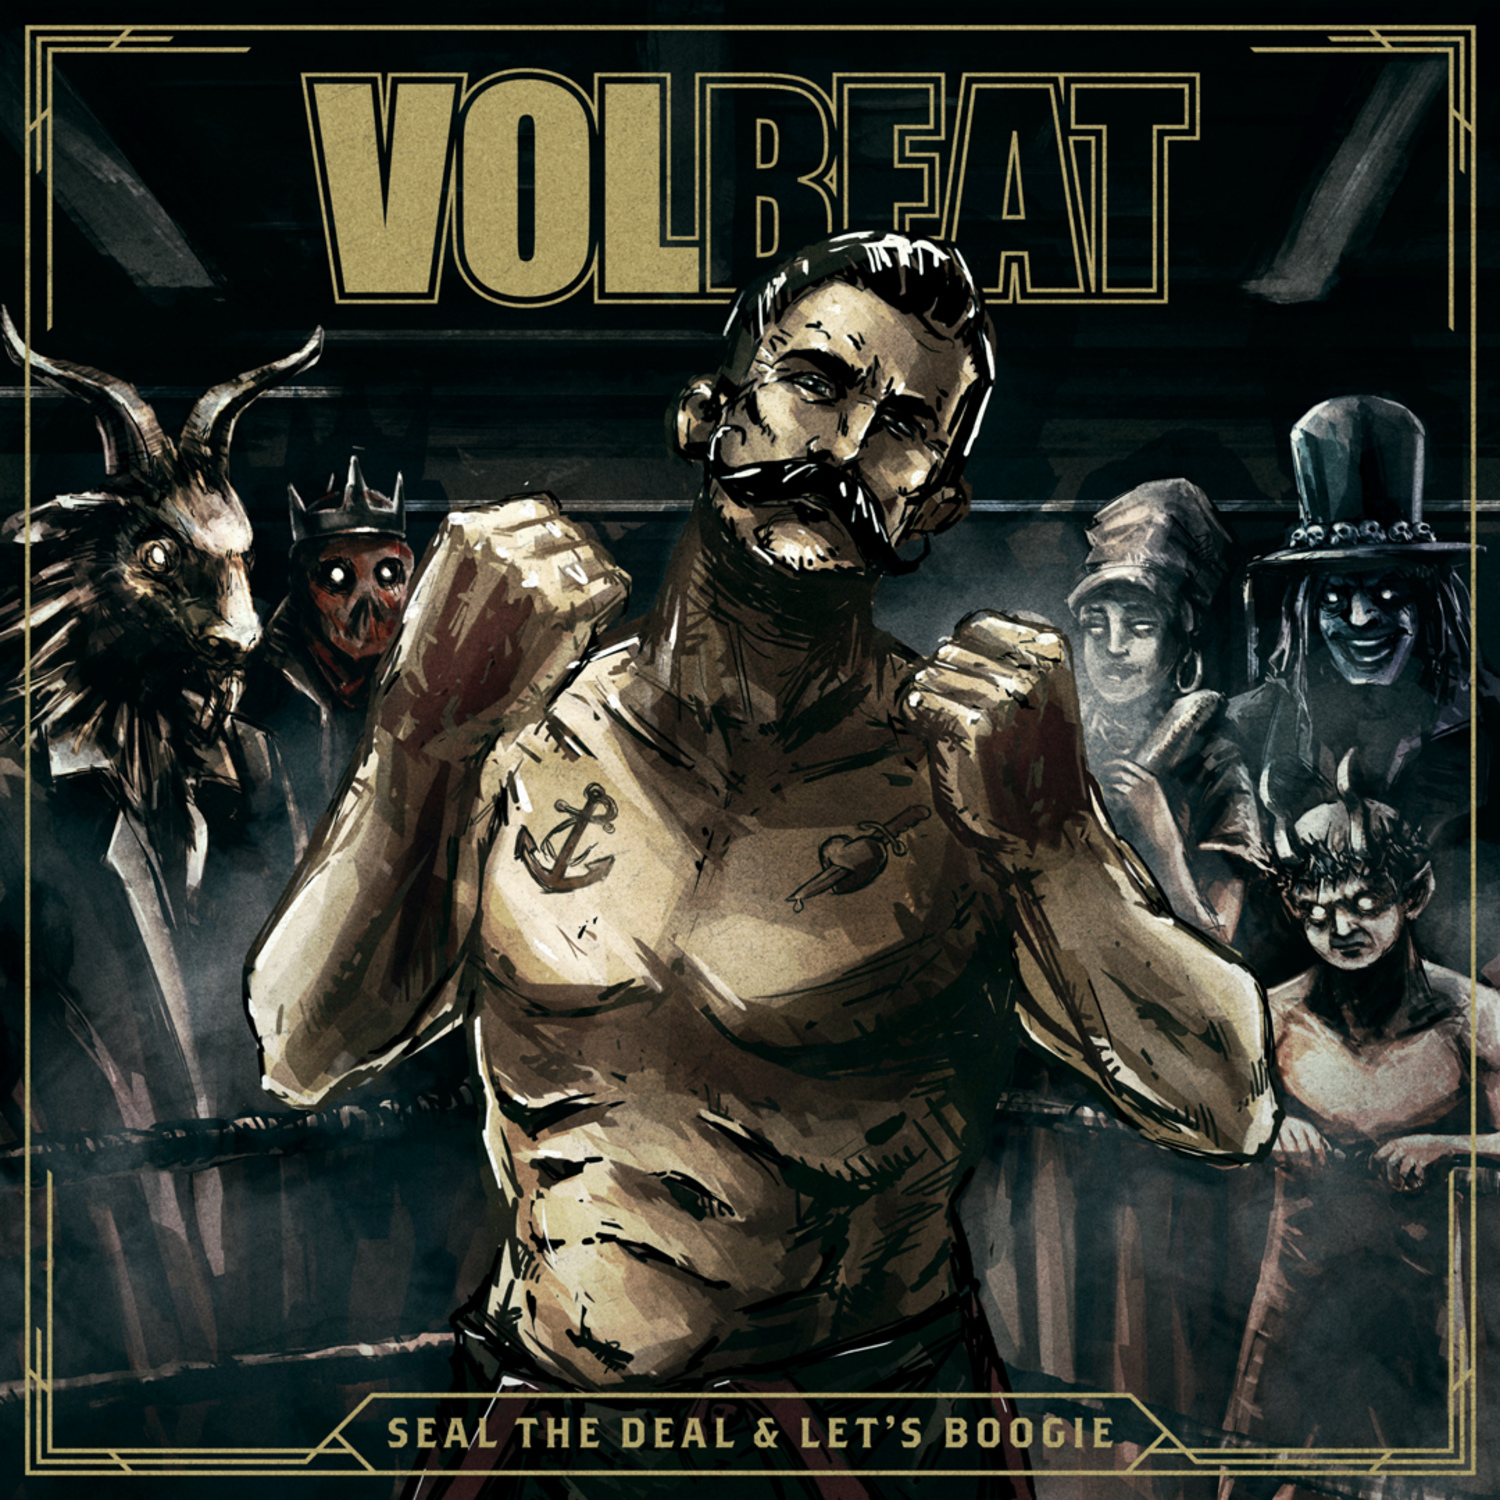 volbeat_seal_the_deal_let_s_boogie_2016.jpg